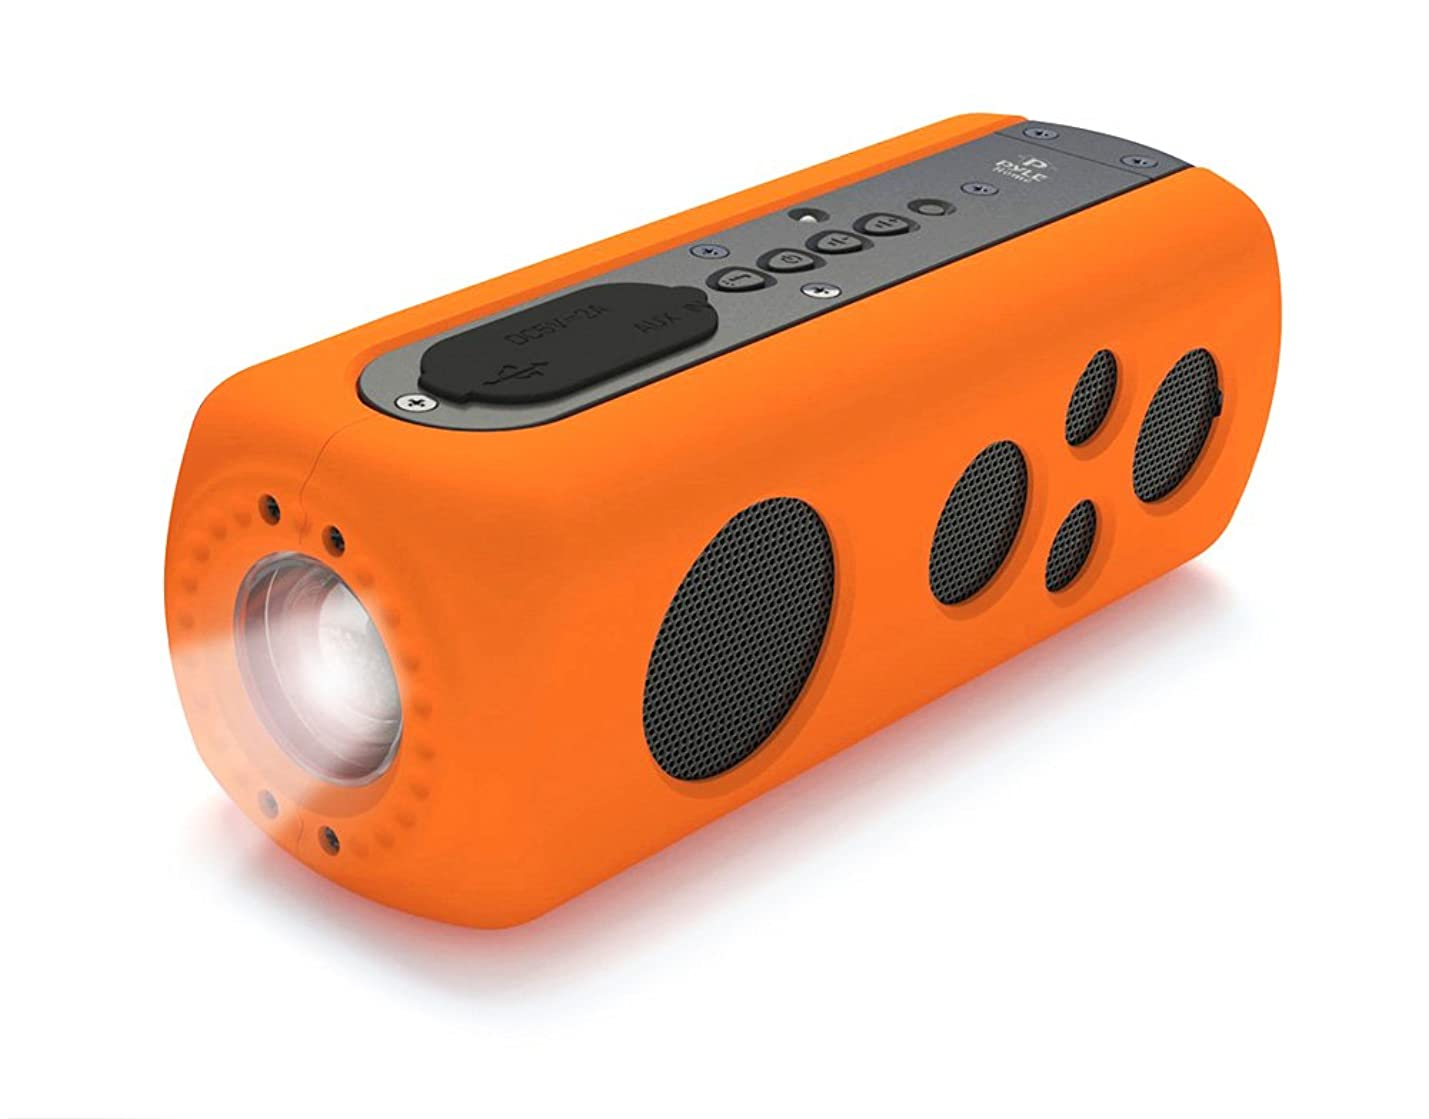 Sound Box Splash Sports Portable Speaker - Wireless Rugged Waterproof Bluetooth Compatible audio Stereo with AUX In Jack, Rechargeable Battery - iPhone Android iPad, MP3 - PyleSport PWPBT75OR (Orange) dwakvdigbzbfm633